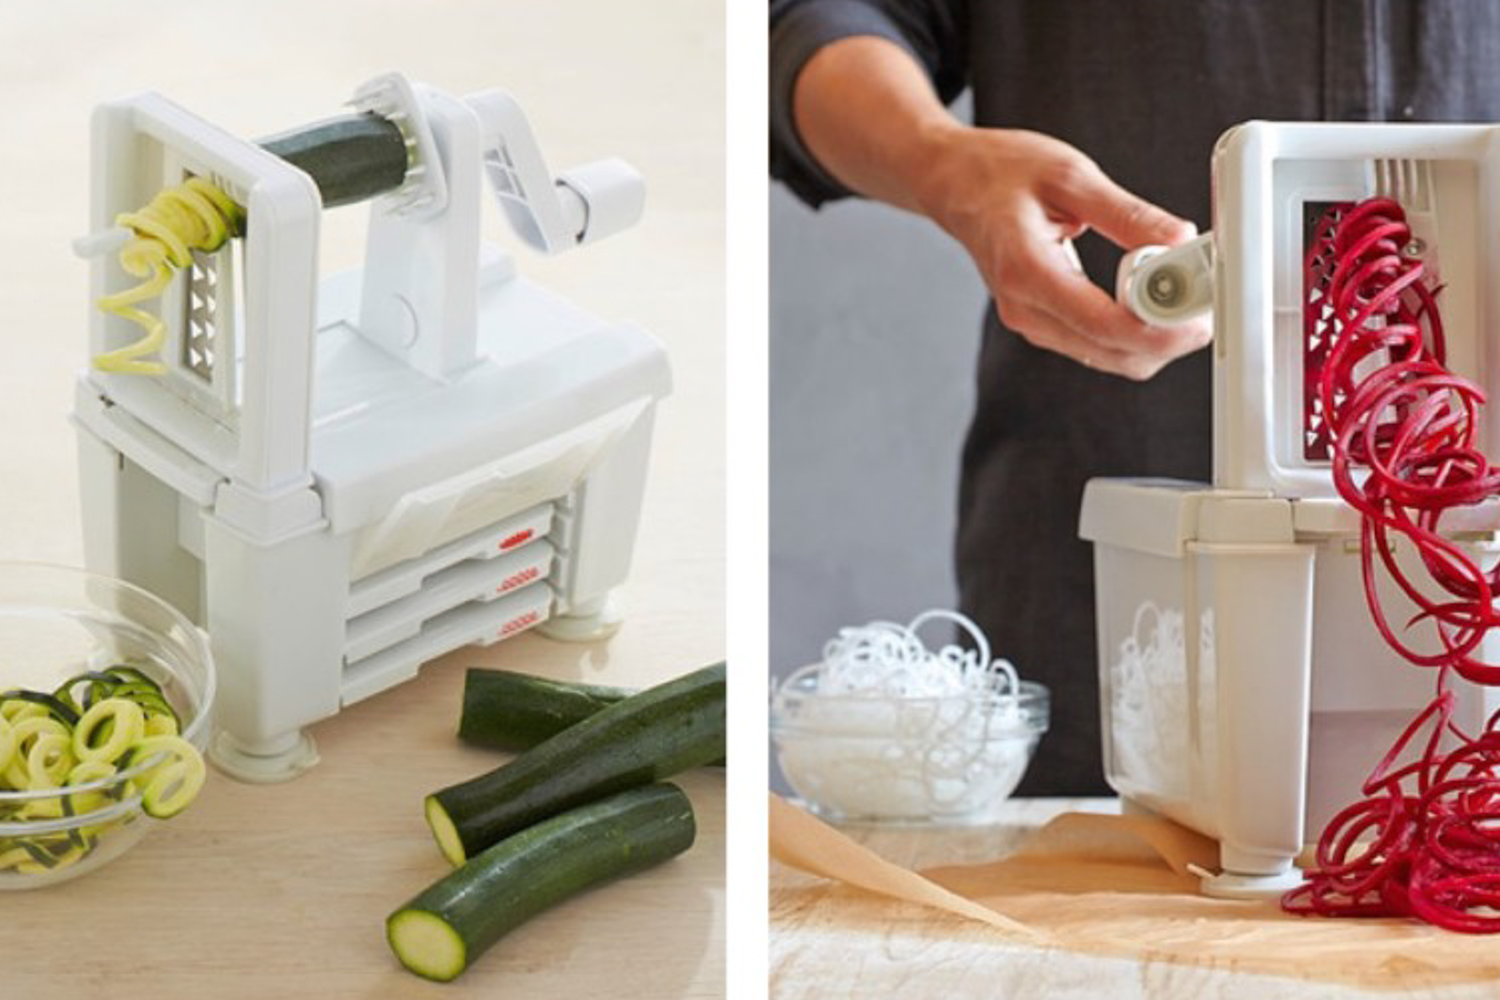 Product Profile: Spiralizer